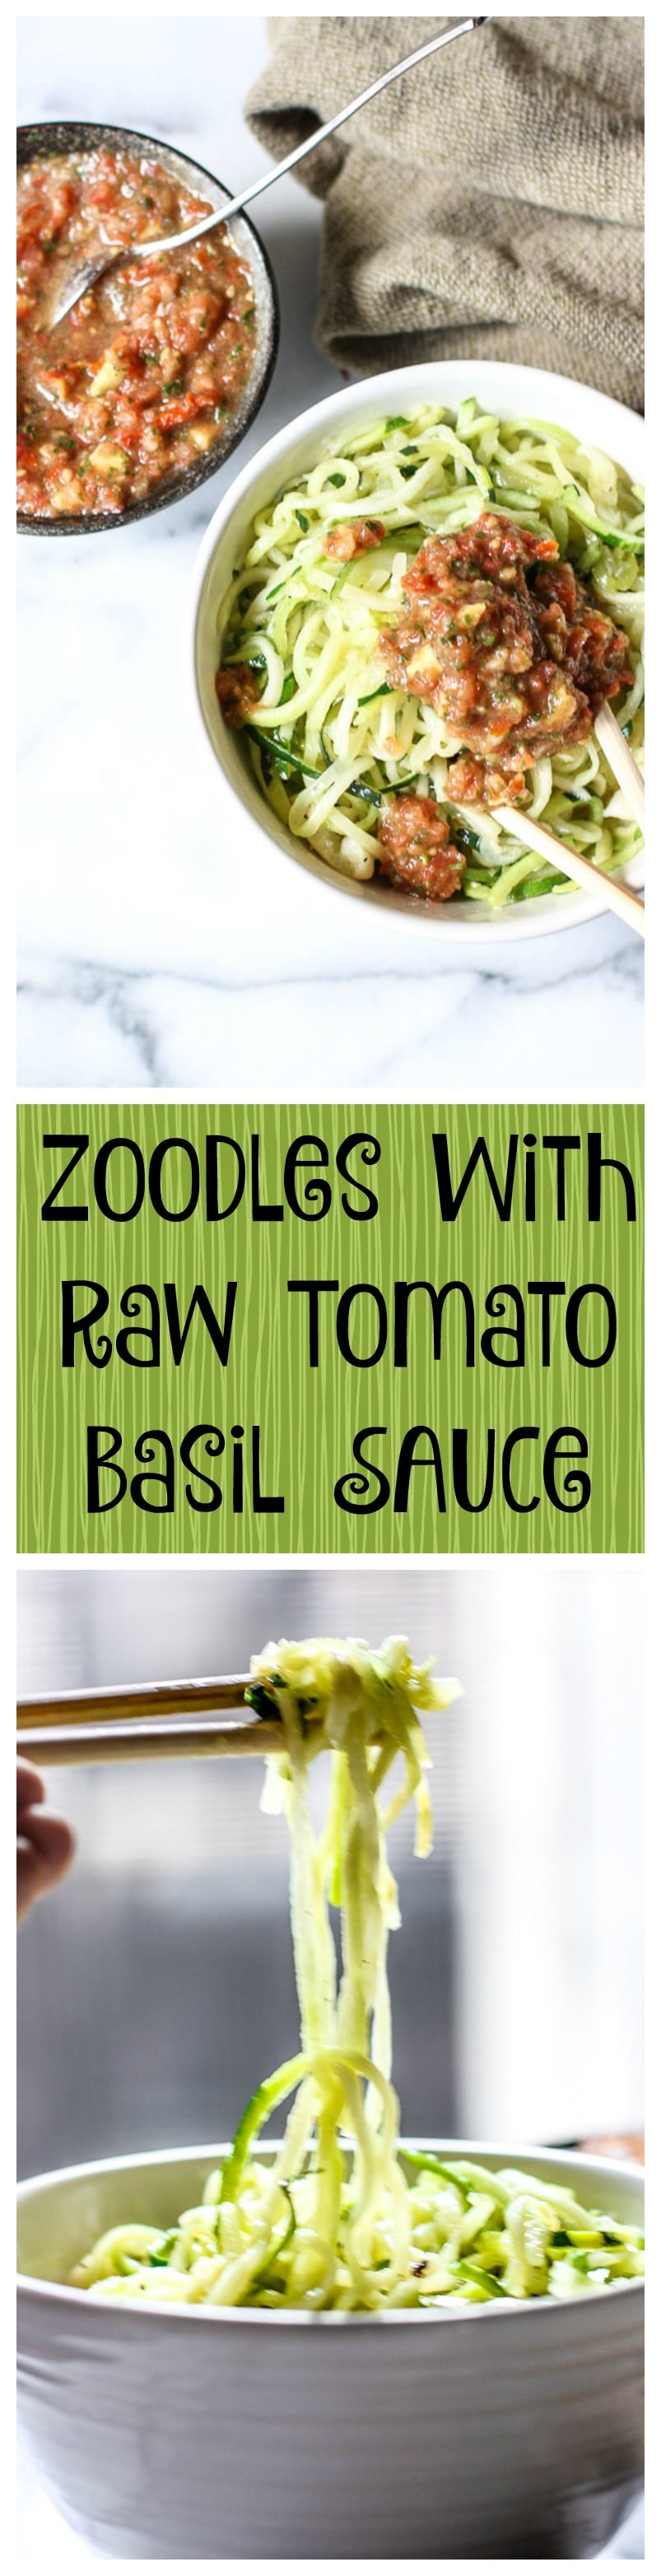 noodles with raw tomato basil sauce